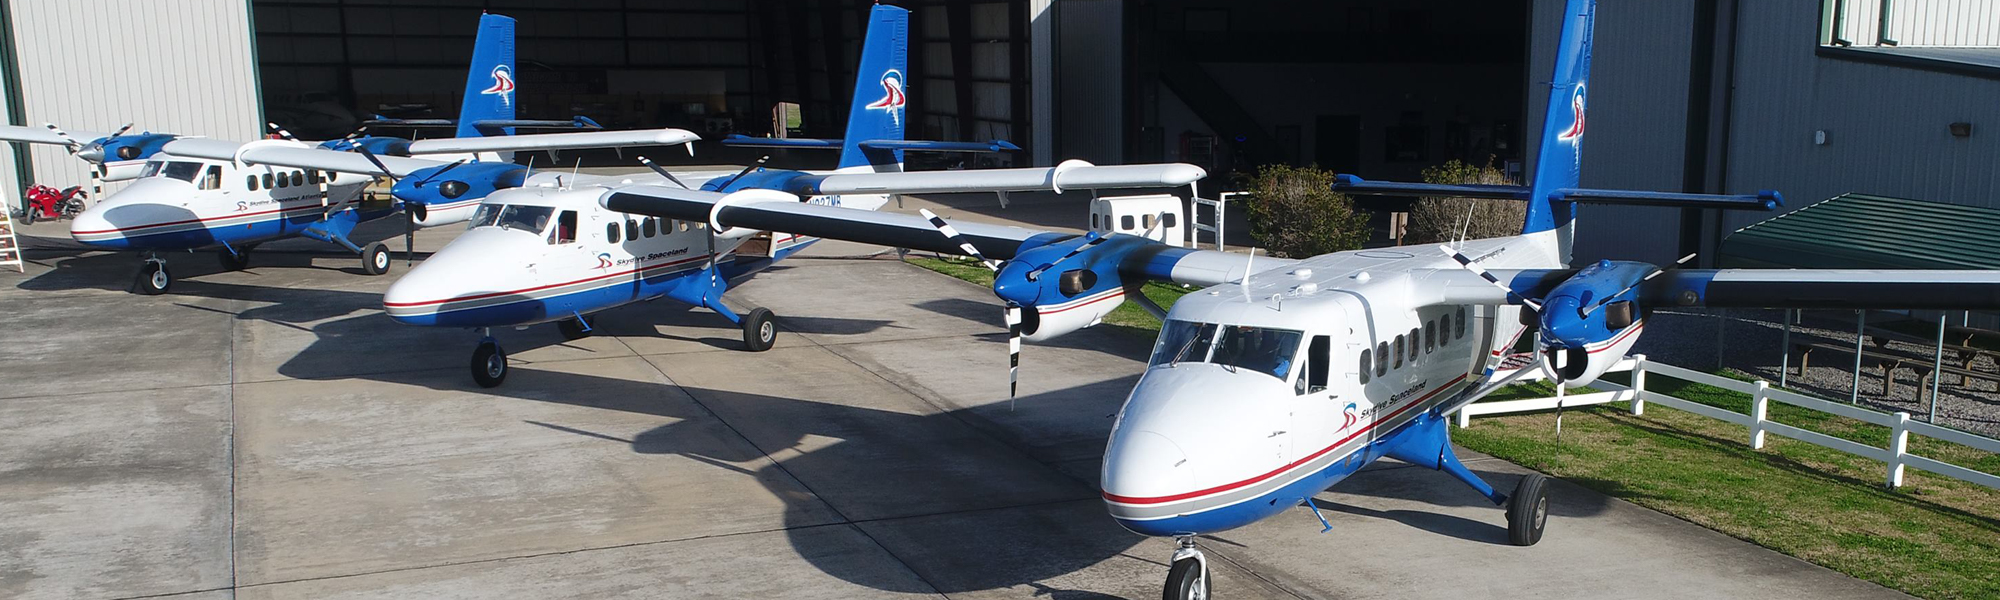 Aircraft flightline at Skydive Spaceland